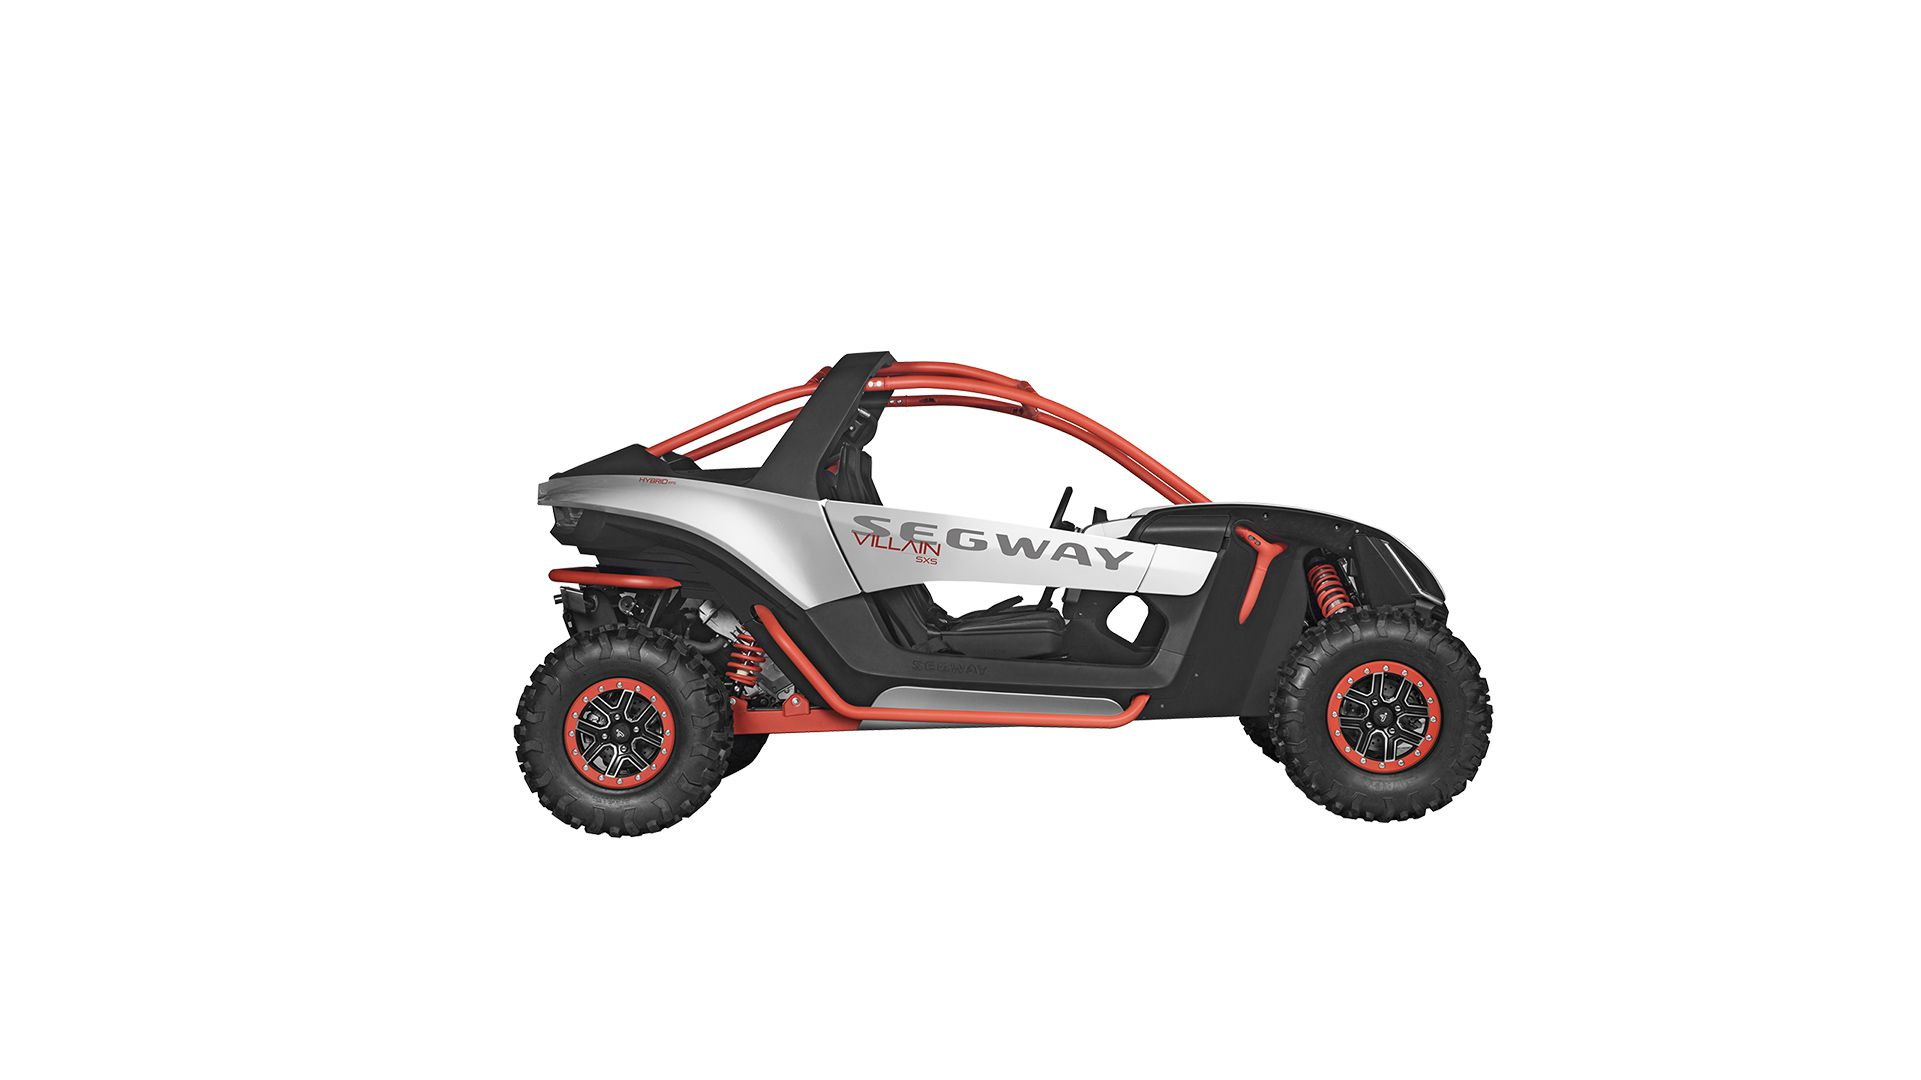 The chassis is made of chromium-molybdenum tubing and includes rock sliders and a front bumper.